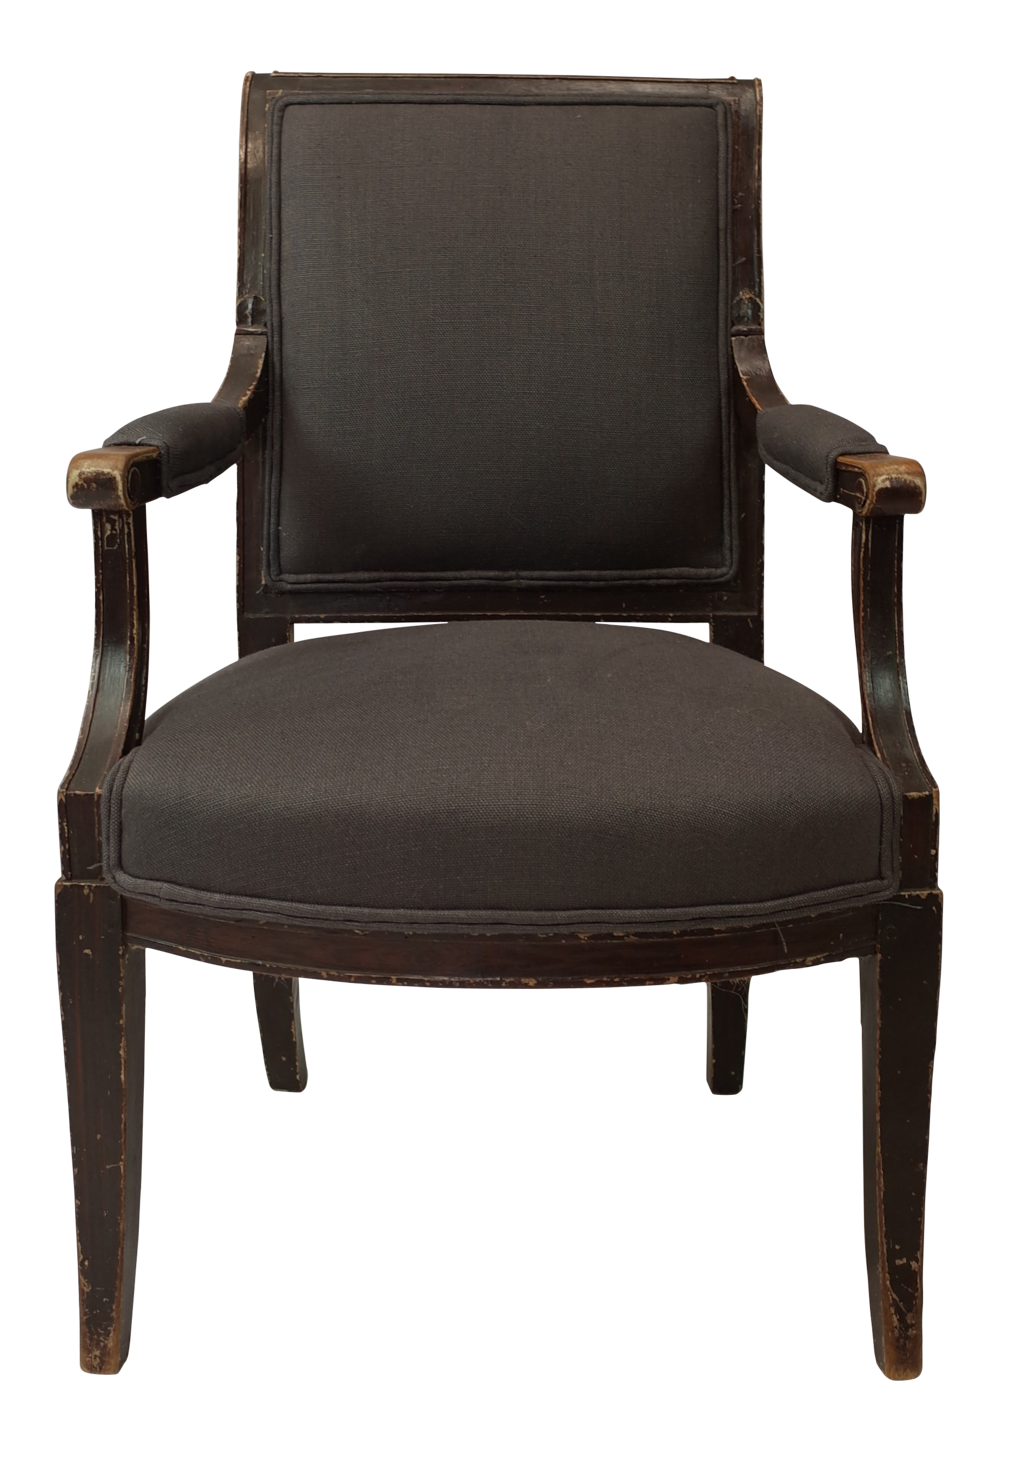 empire fauteuil with original paint decorative collective. Black Bedroom Furniture Sets. Home Design Ideas